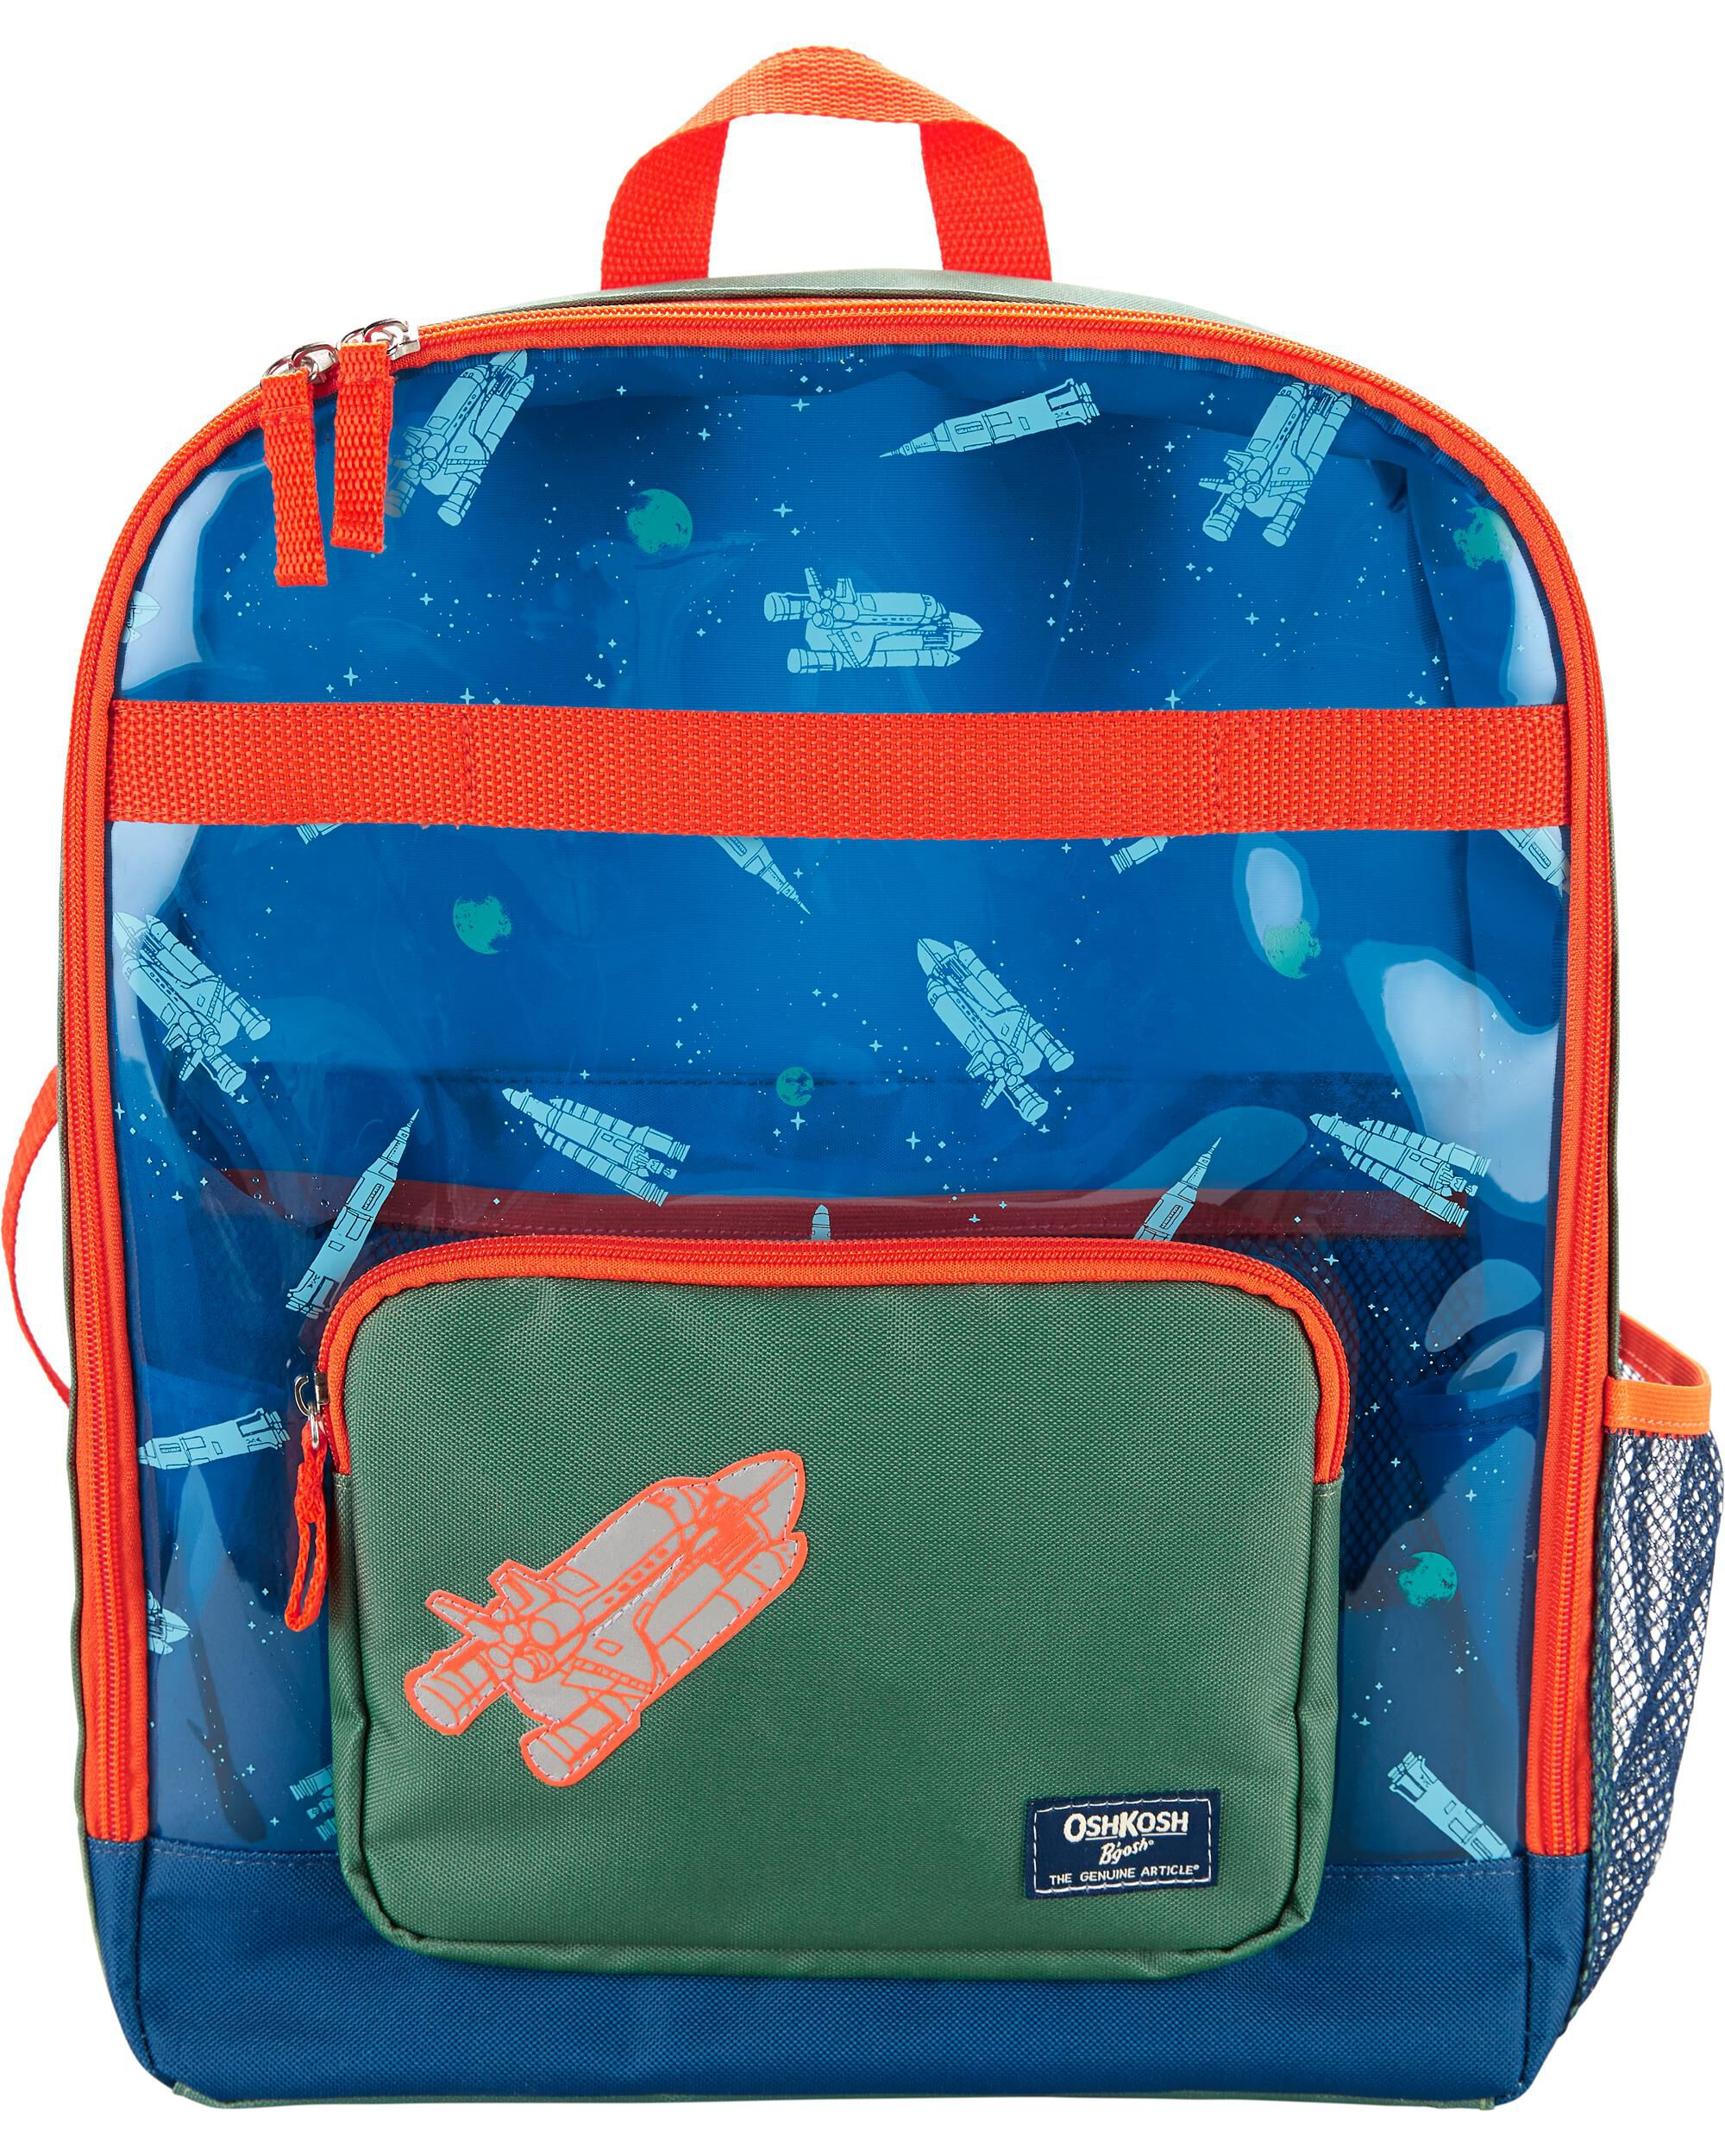 Oshkoshbgosh Rocketship Backpack